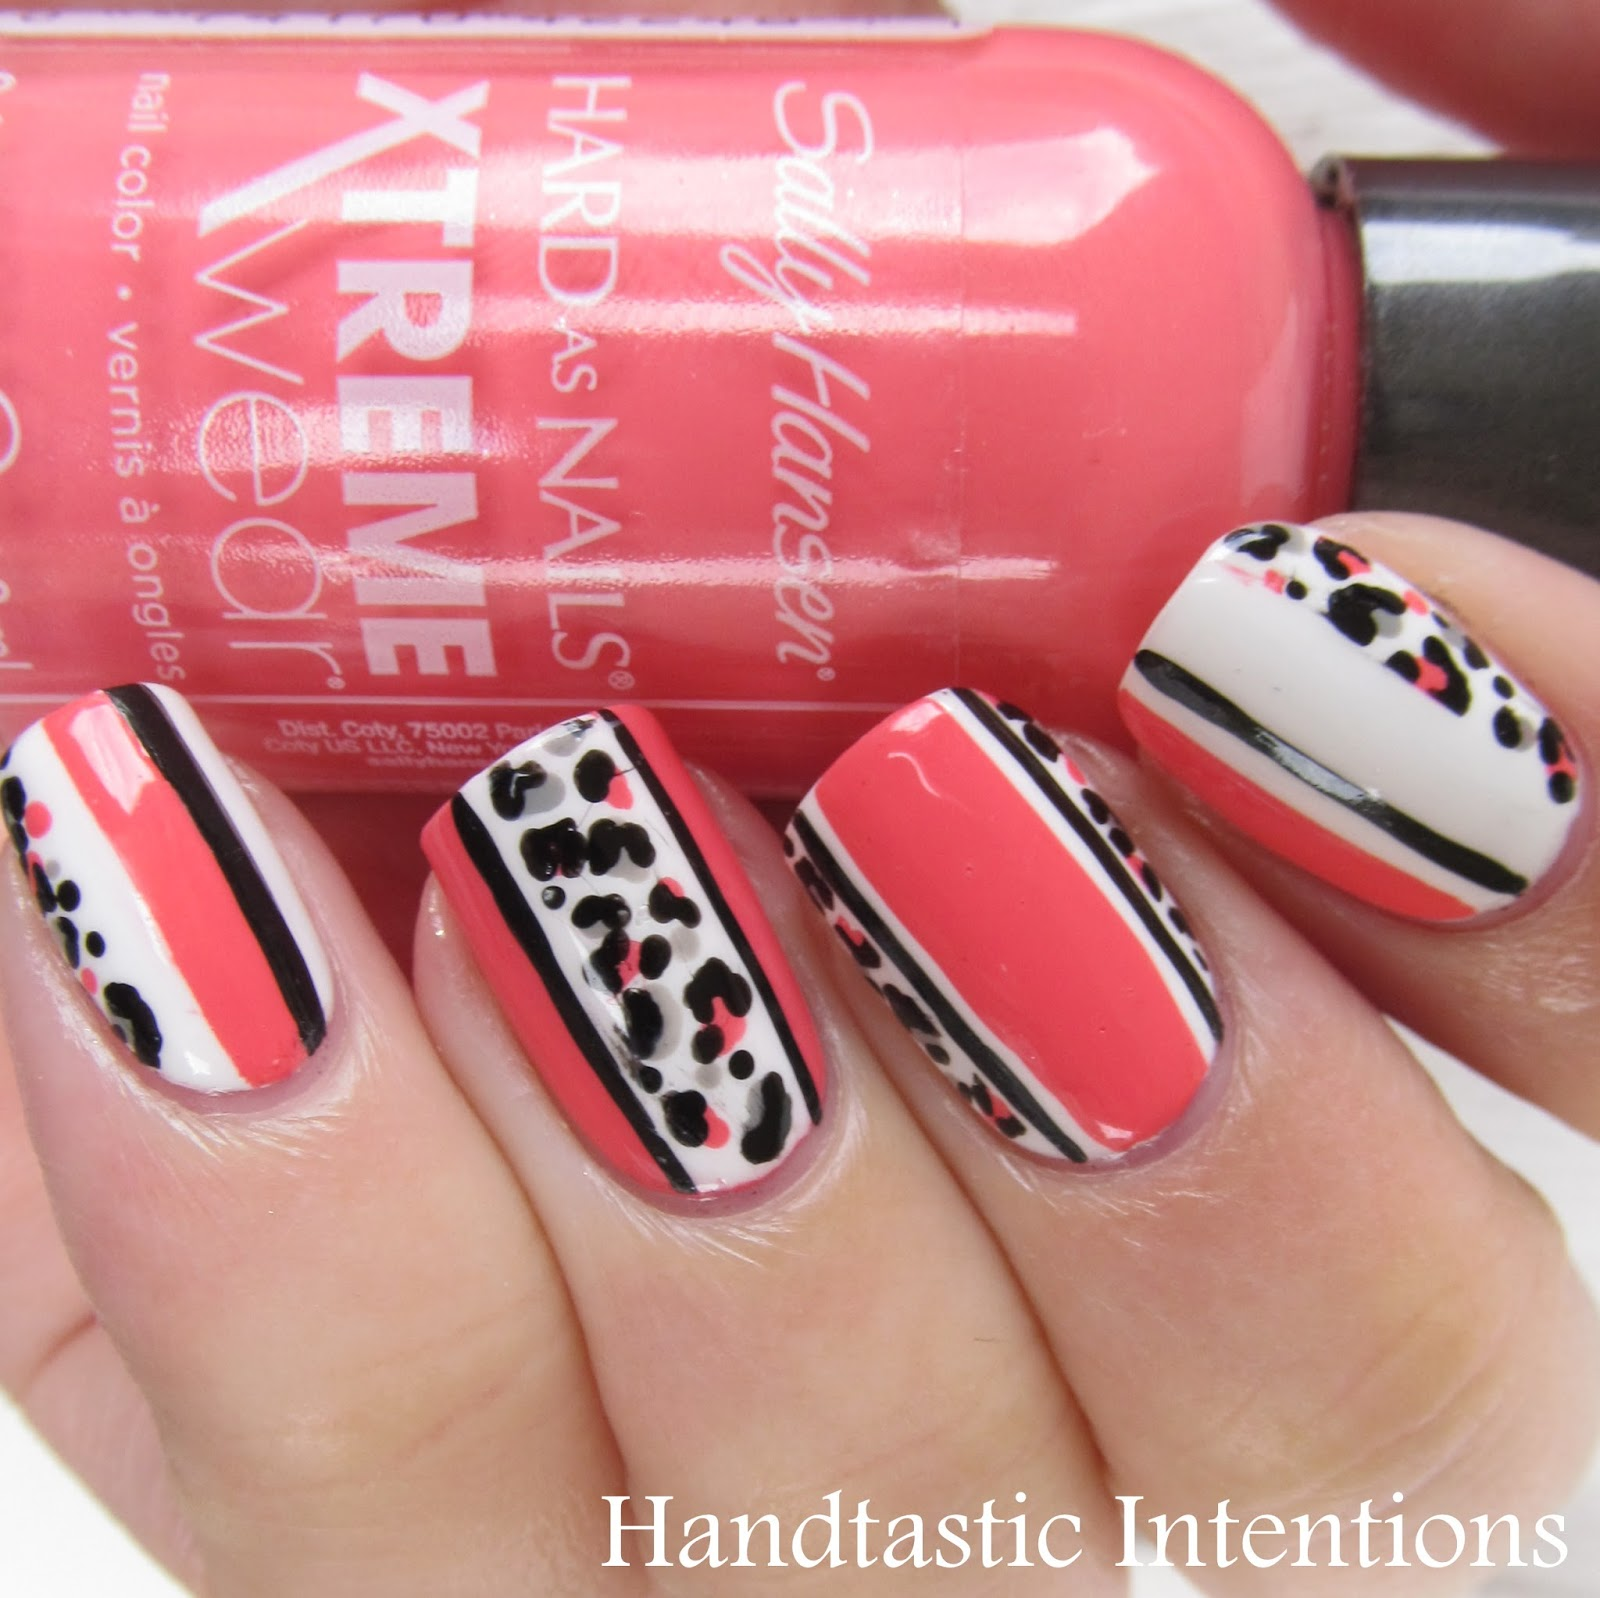 Handtastic Intentions: Nail Art: Leopard and Stripes